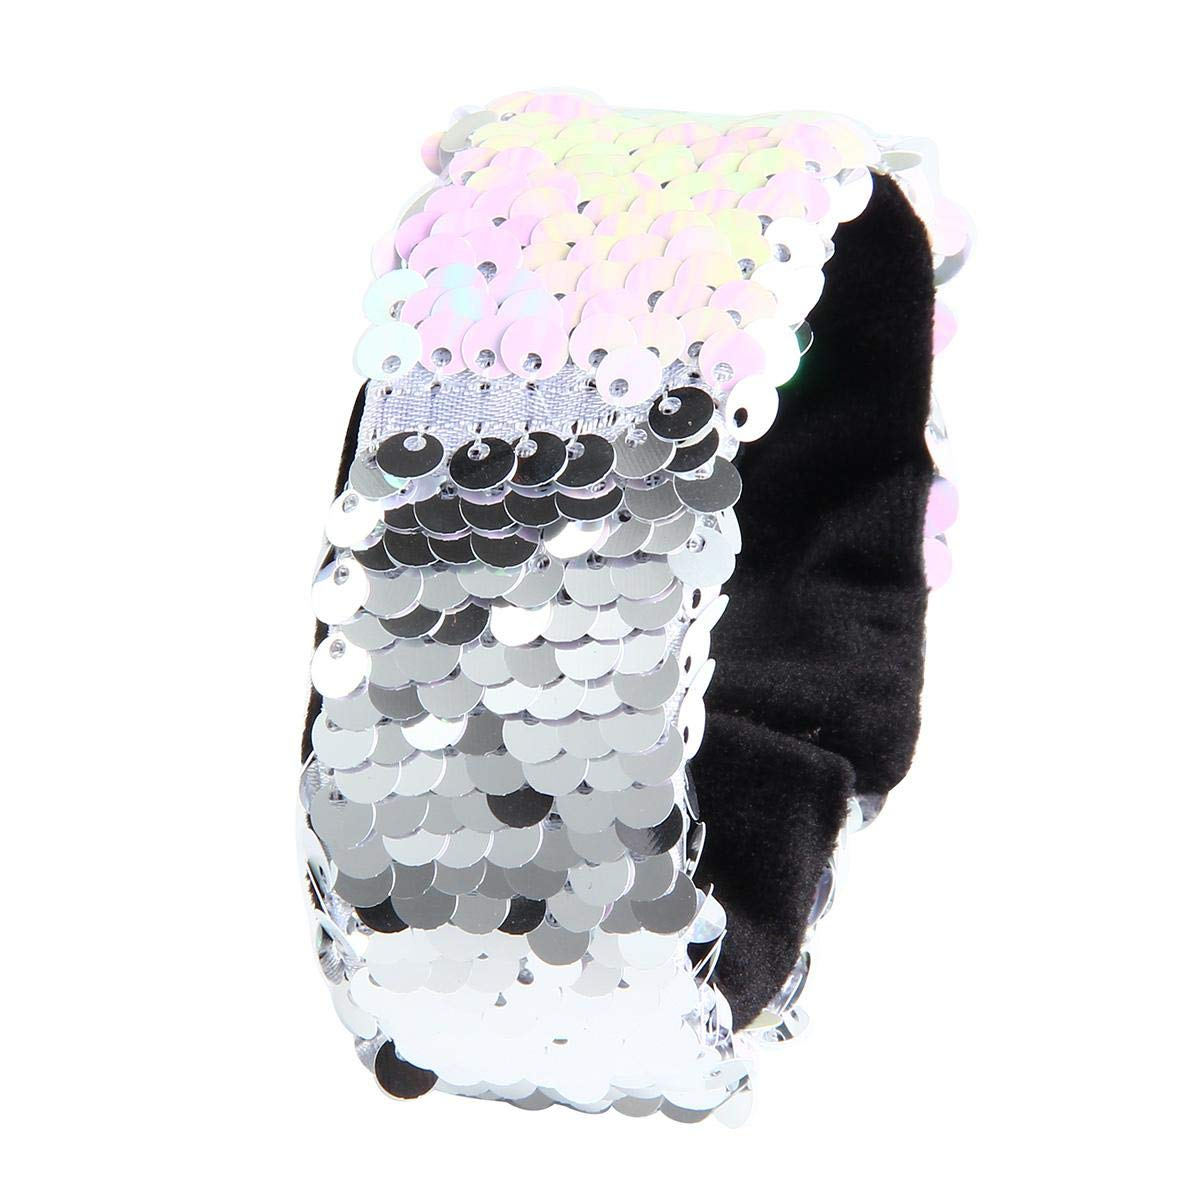 2019 Fashion New Fashion Mermaid Sequined Bracelet Cool Party Wristband Two-color Reversible Charm Sequins Flip Arm Warmers In Many Styles Women's Arm Warmers